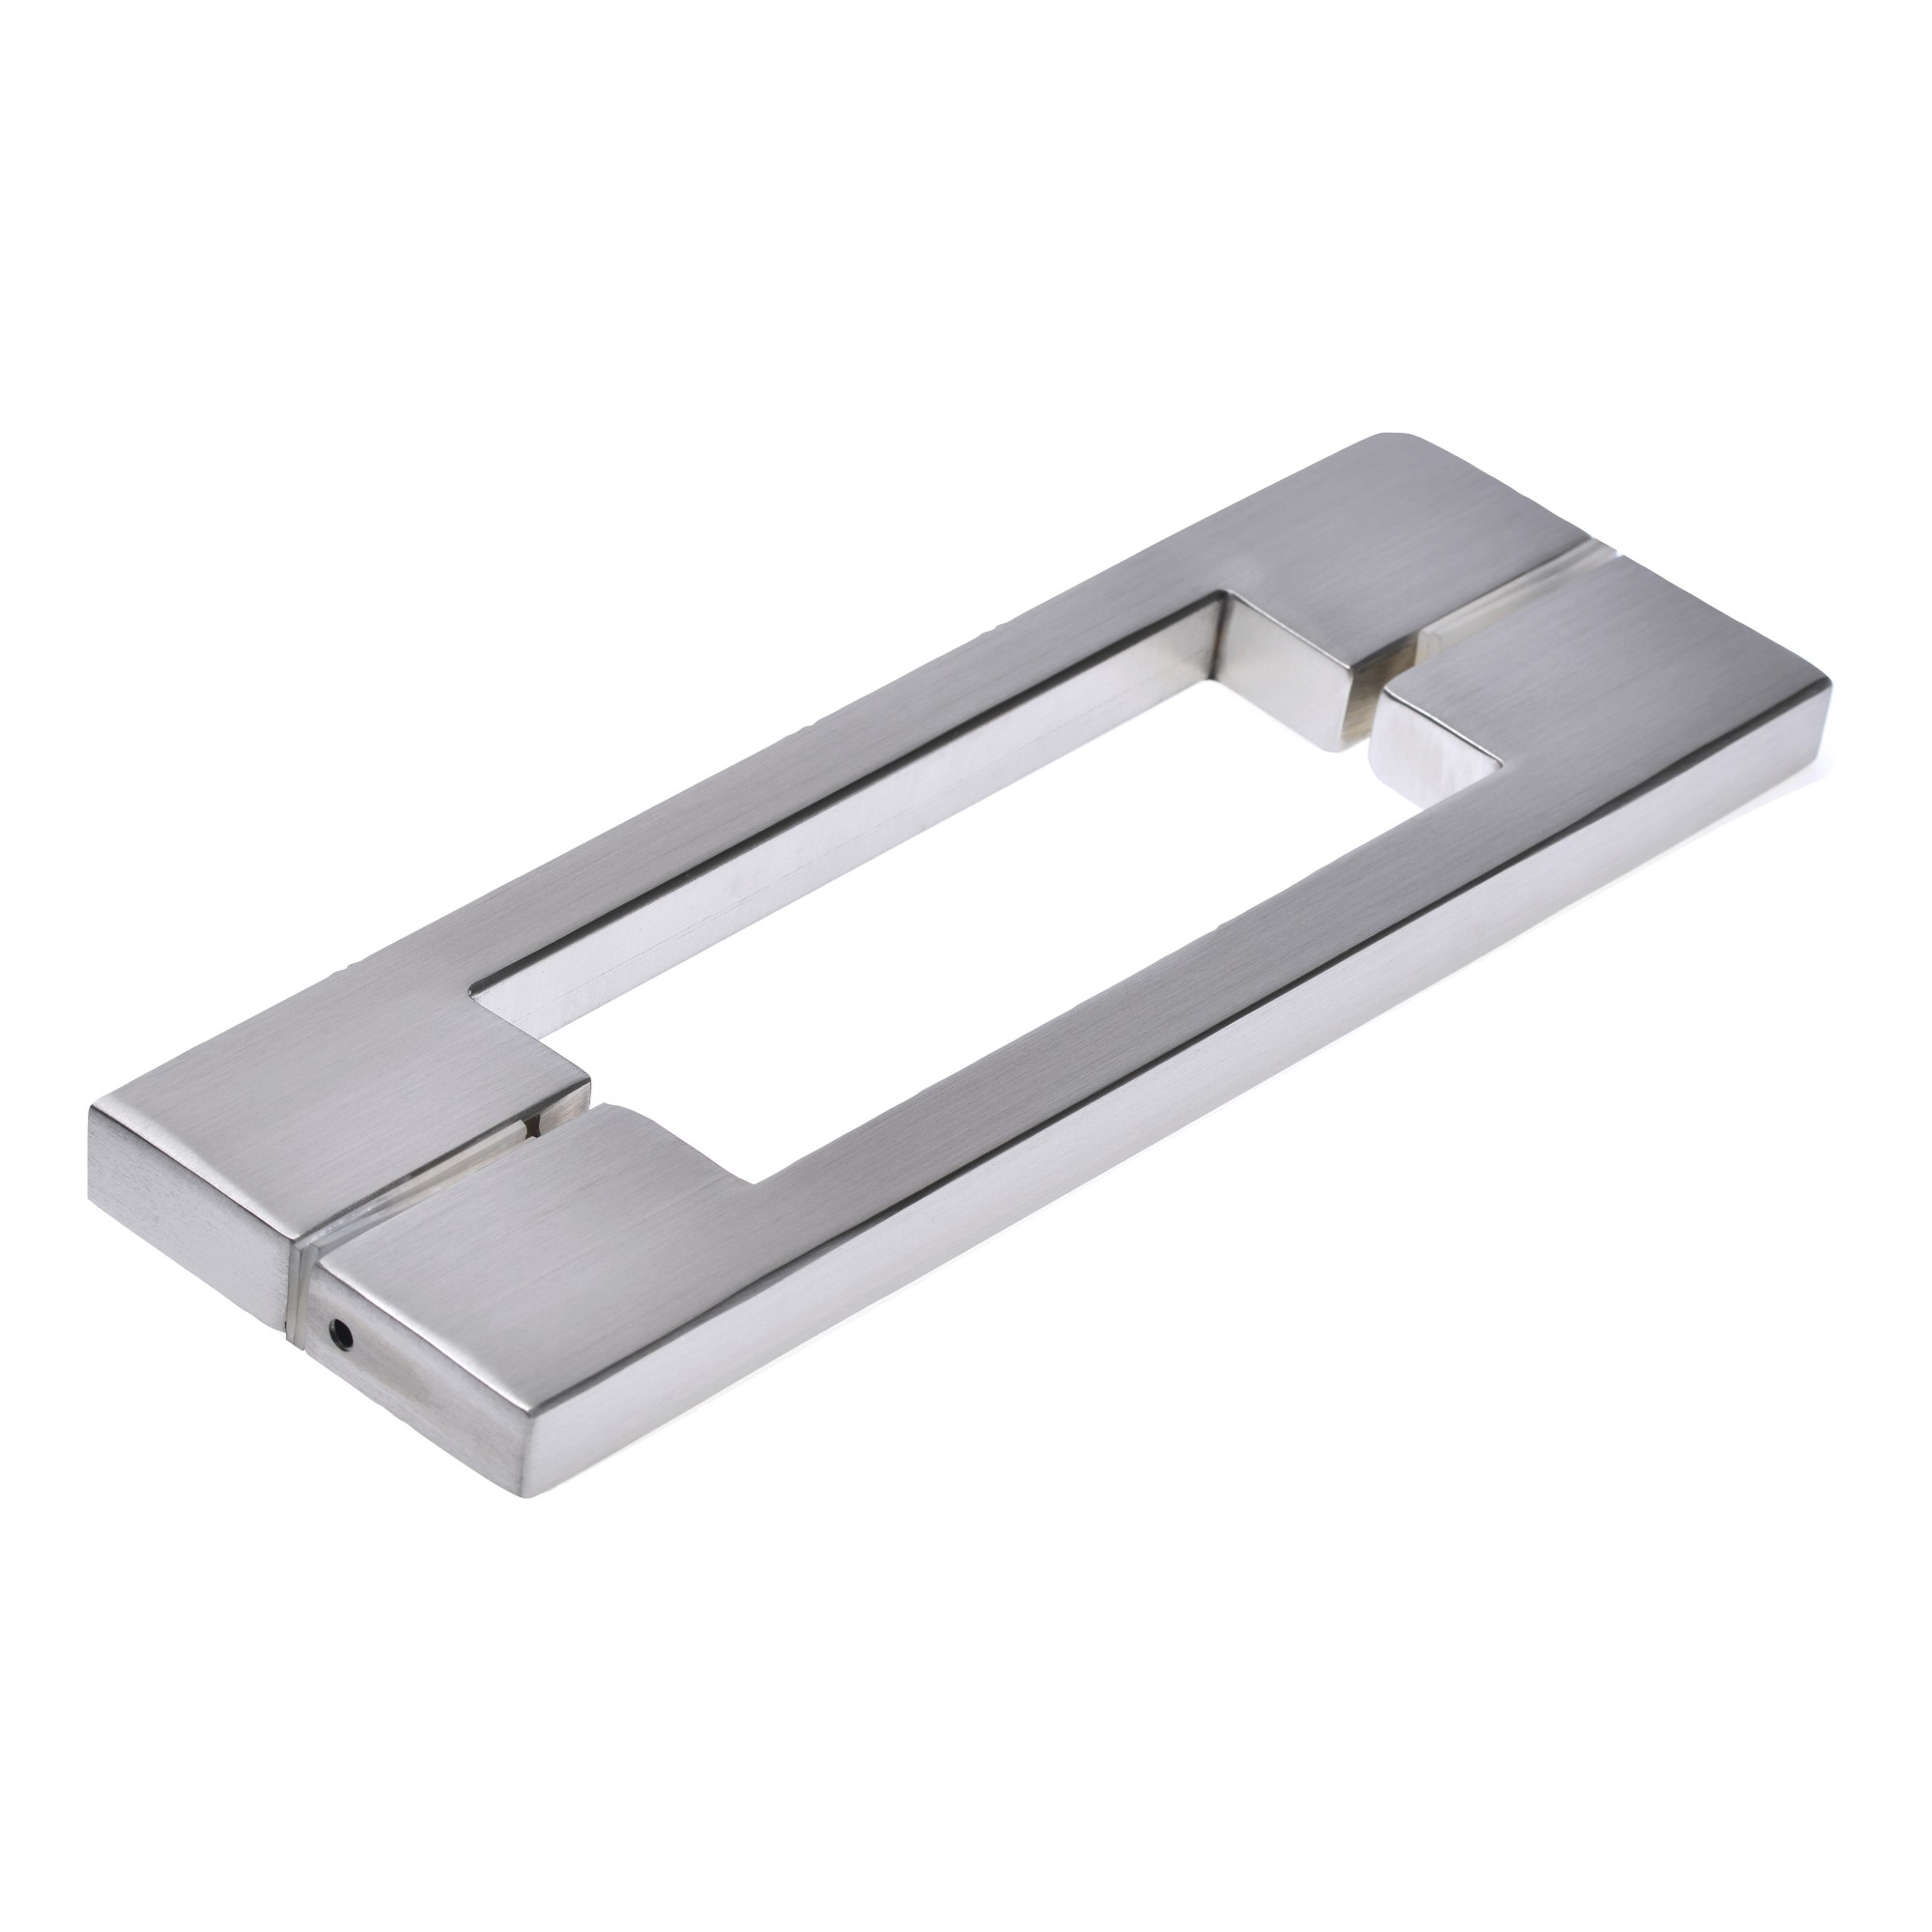 Puxador de Aco Inox Escovado 400 mm - Munique Hastvel